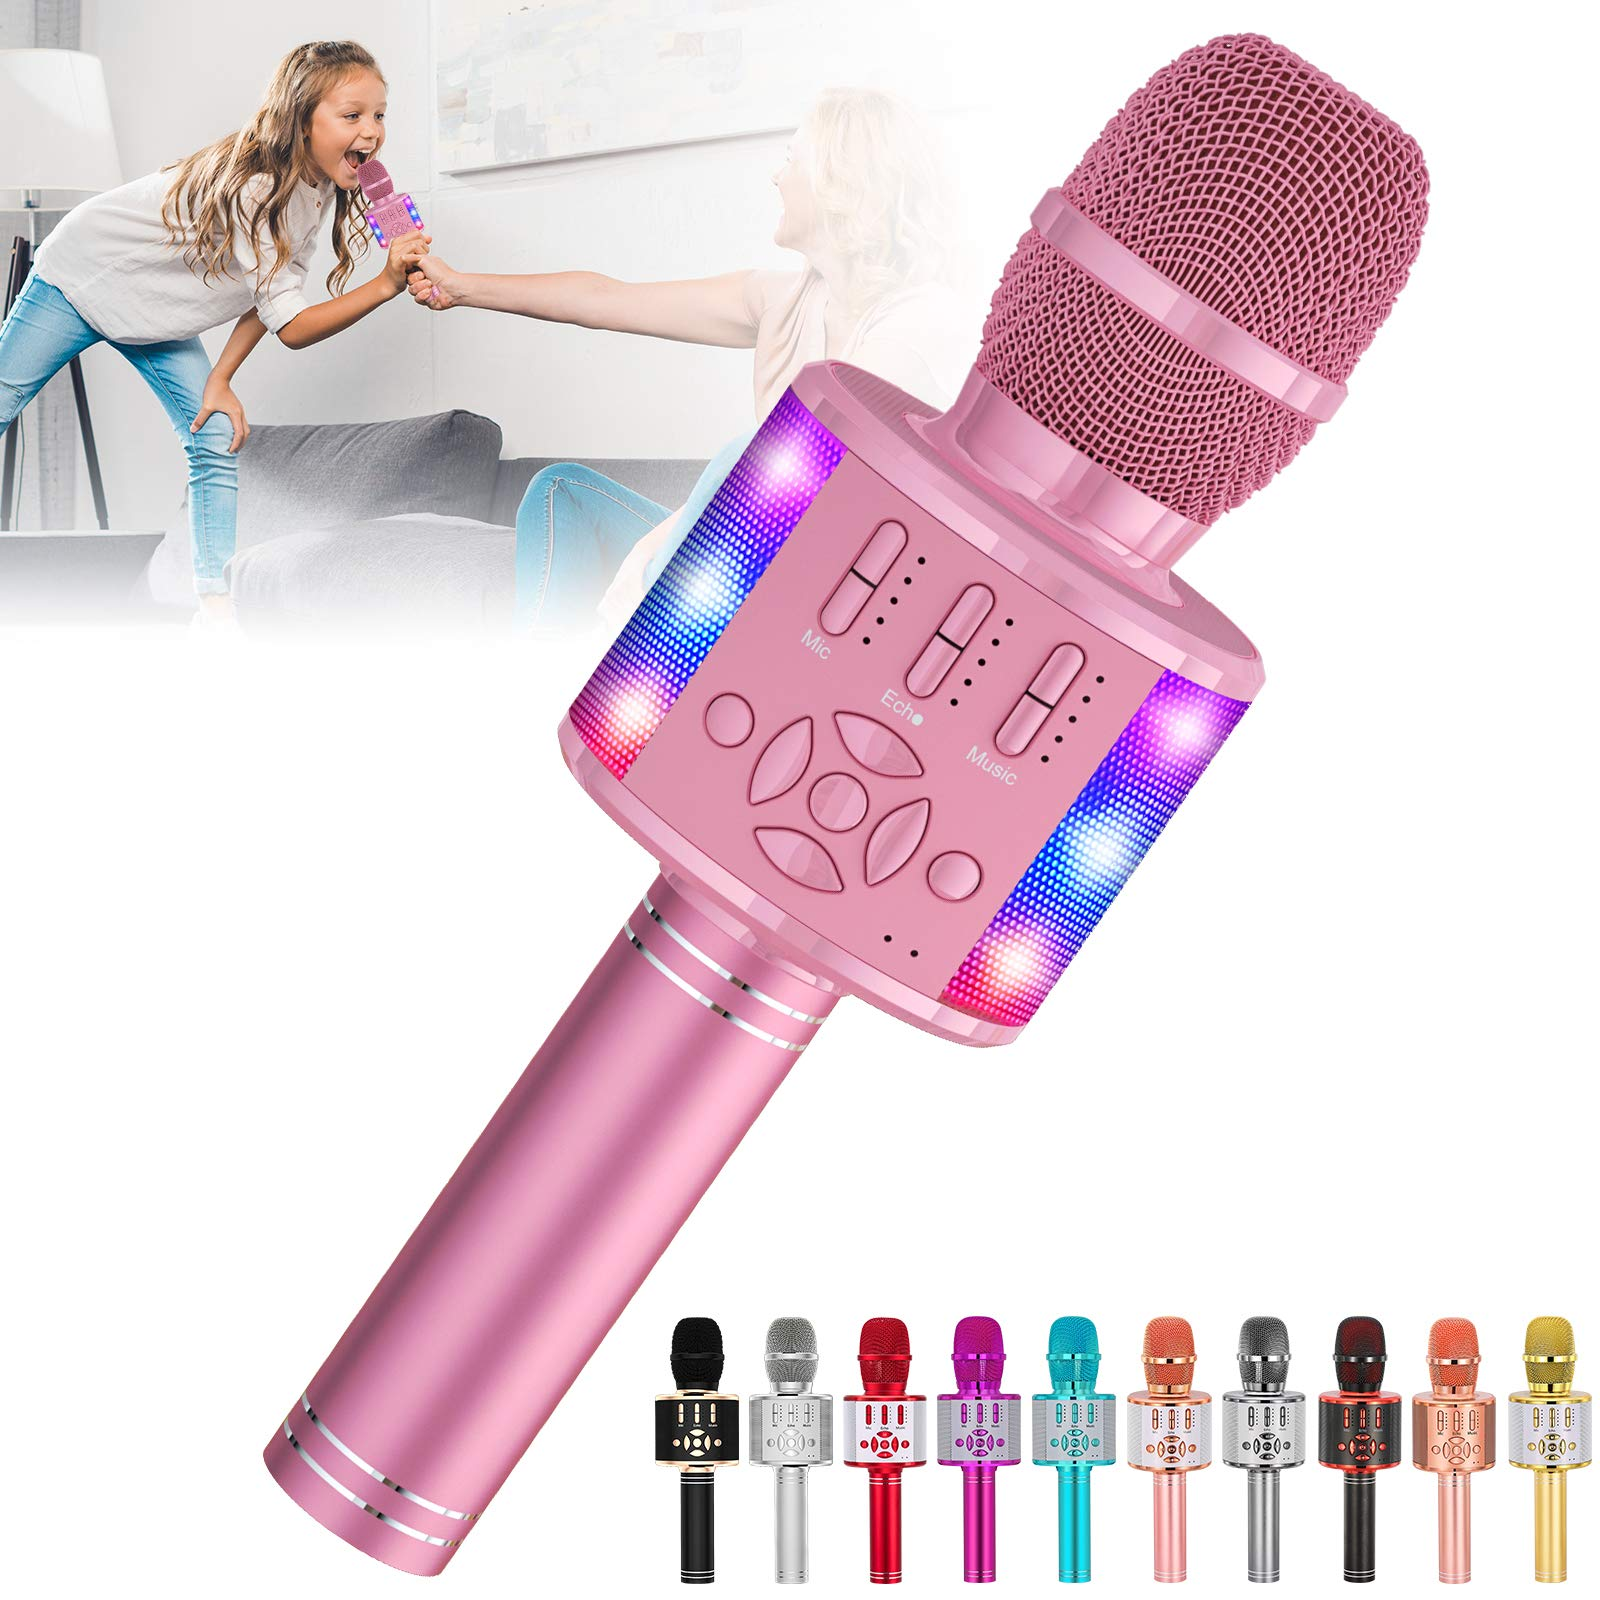 Amazmic Kids Karaoke Microphone Machine Toy Bluetooth Microphone Portable Wireless Karaoke Machine Handheld with LED Lights, Gift for Children Adults Birthday Party, Home KTV(Pink)